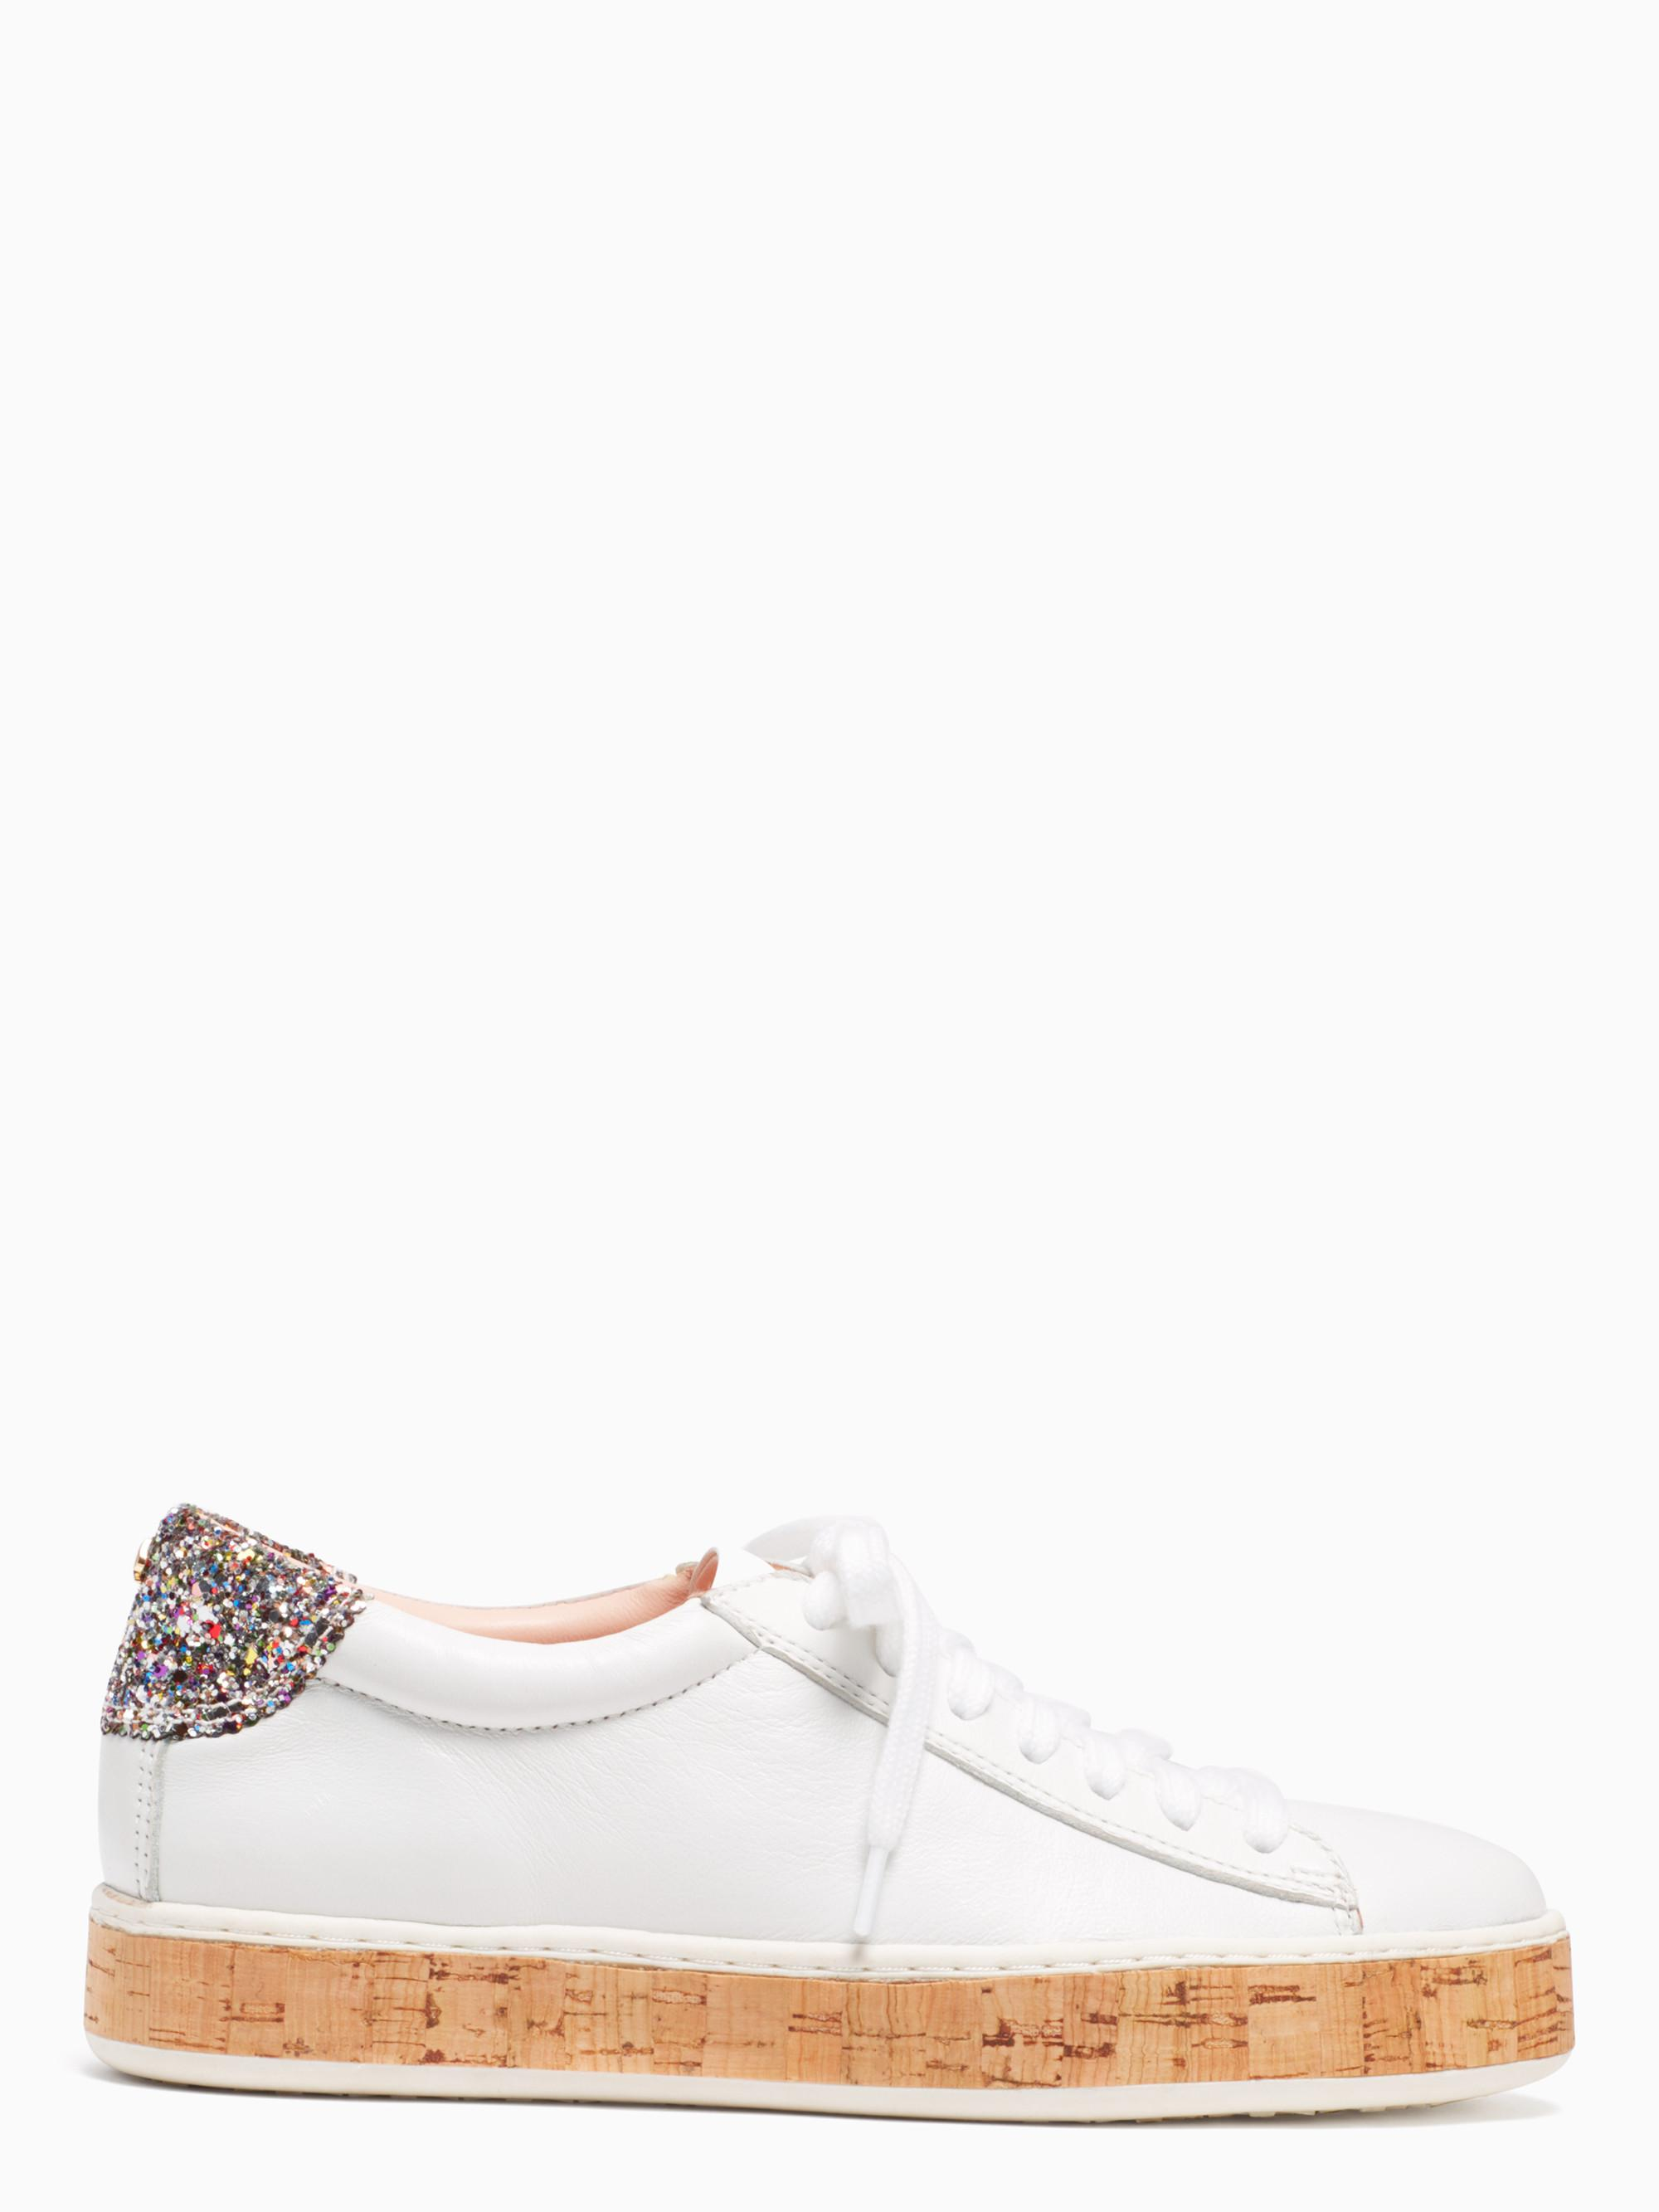 0e36d839ef61 Lyst - Kate Spade Amy Sneakers in White